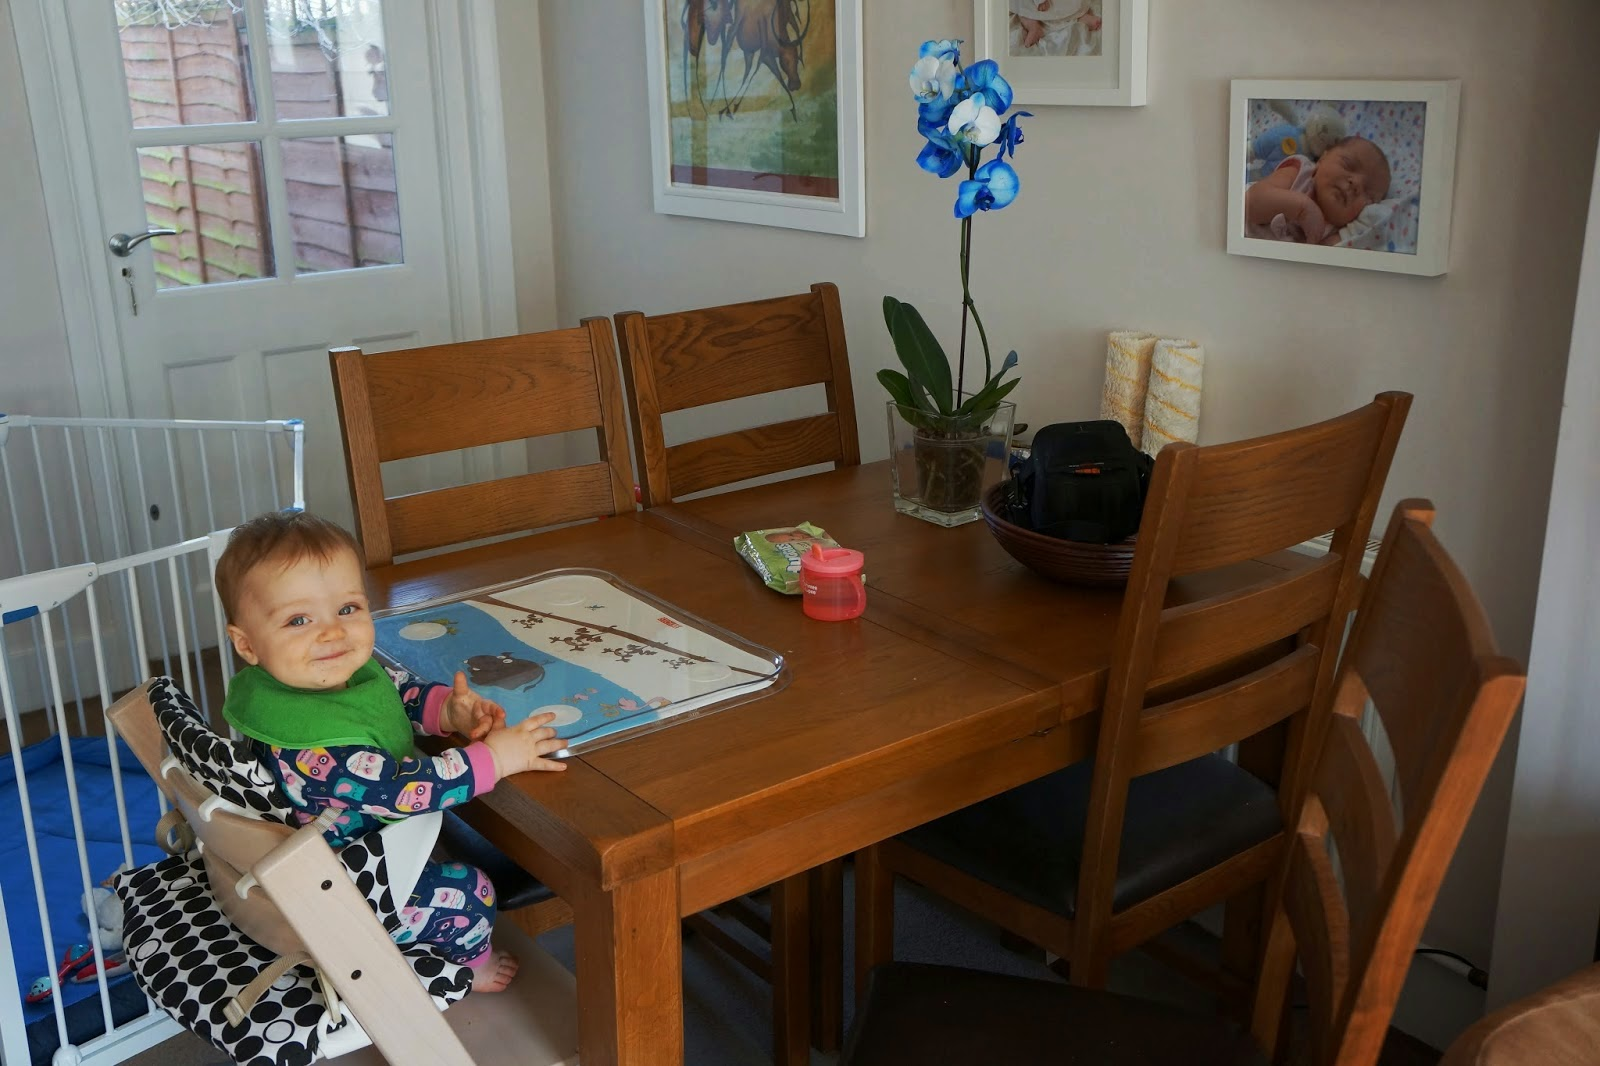 Tripp Trapp High Chair Parsons Chairs Set Of 2 How To Choose The Best Stokke Accessories For Your Table Top Cushion